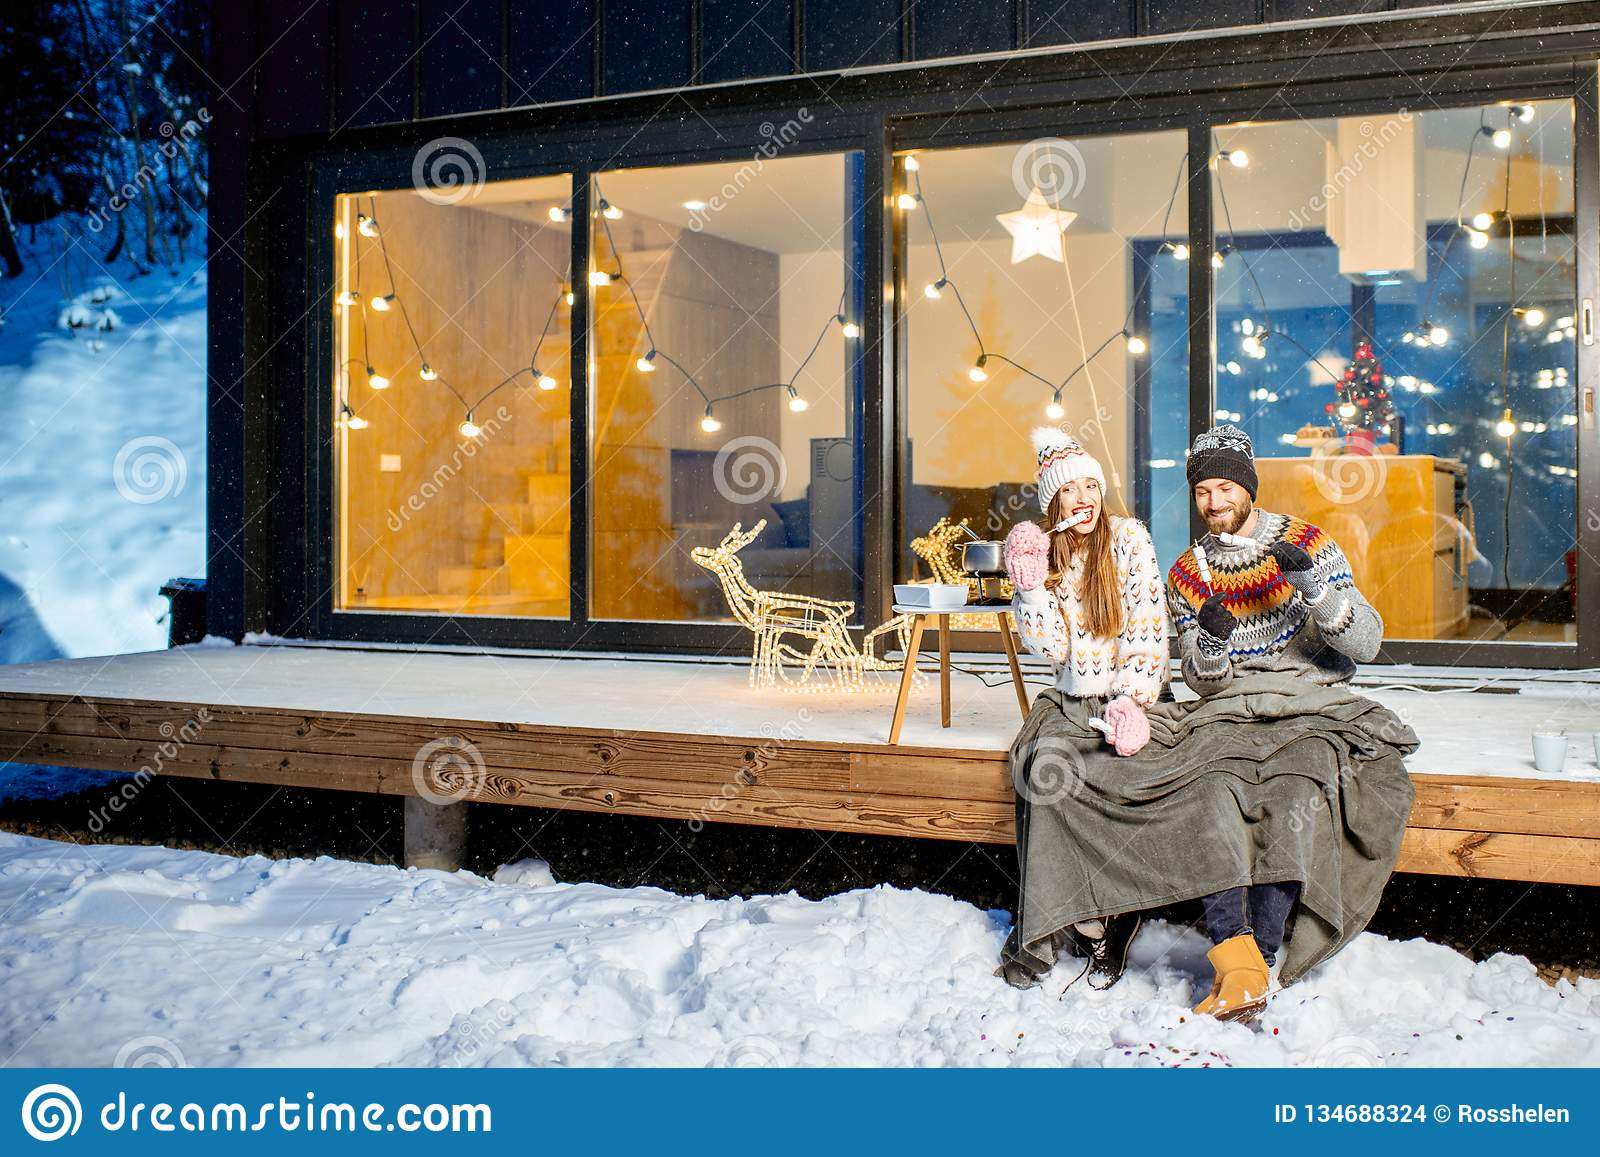 Couple warming up near the house during the winter holidays